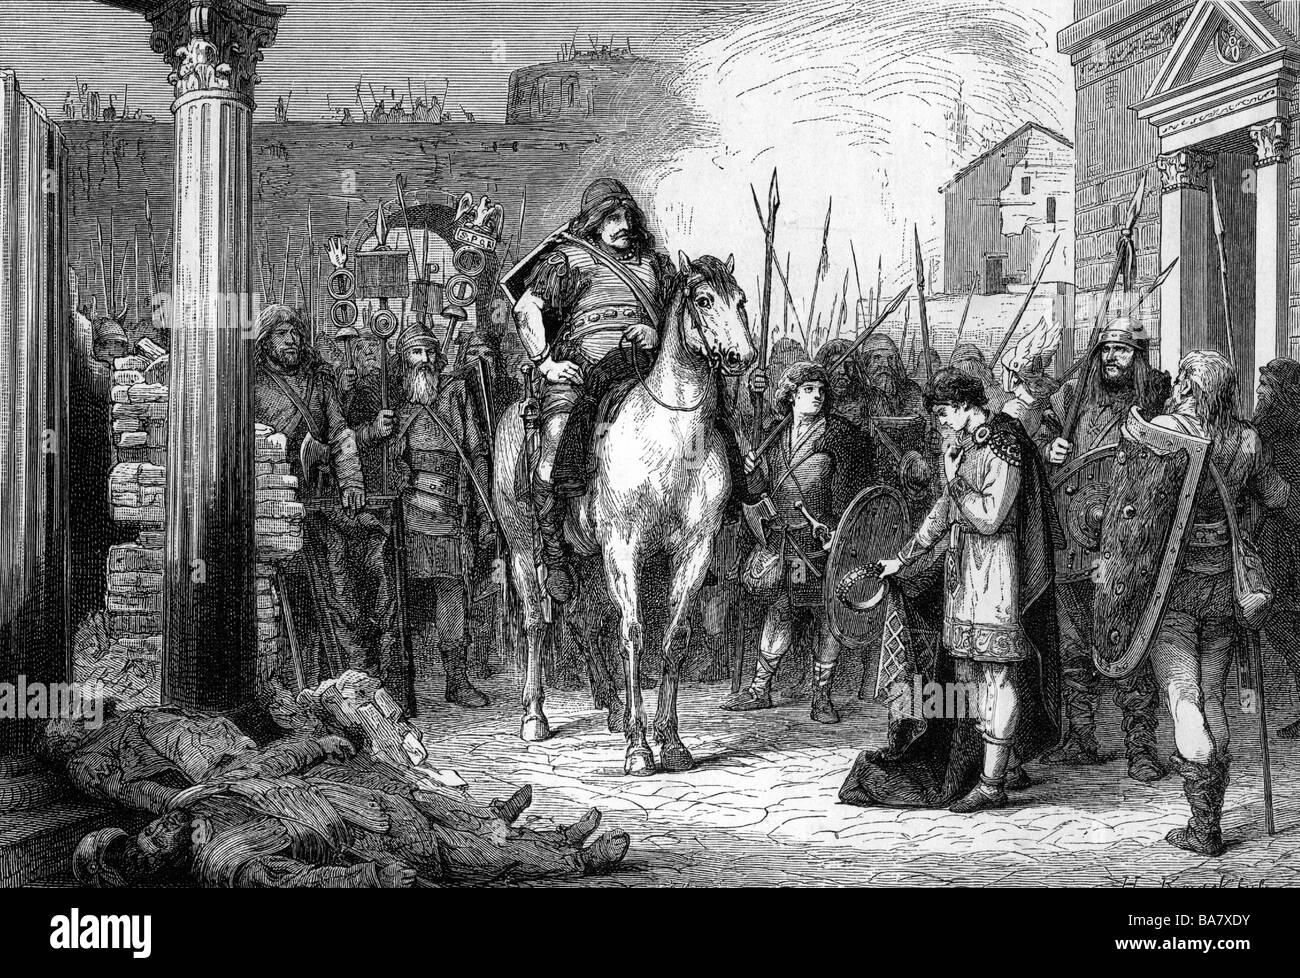 Romulus Augustulus, 460 - circa 510, Roman Emperor 31.10.475 - 4.9.476, abdication in front of Odoacer, wood engraving, - Stock Image